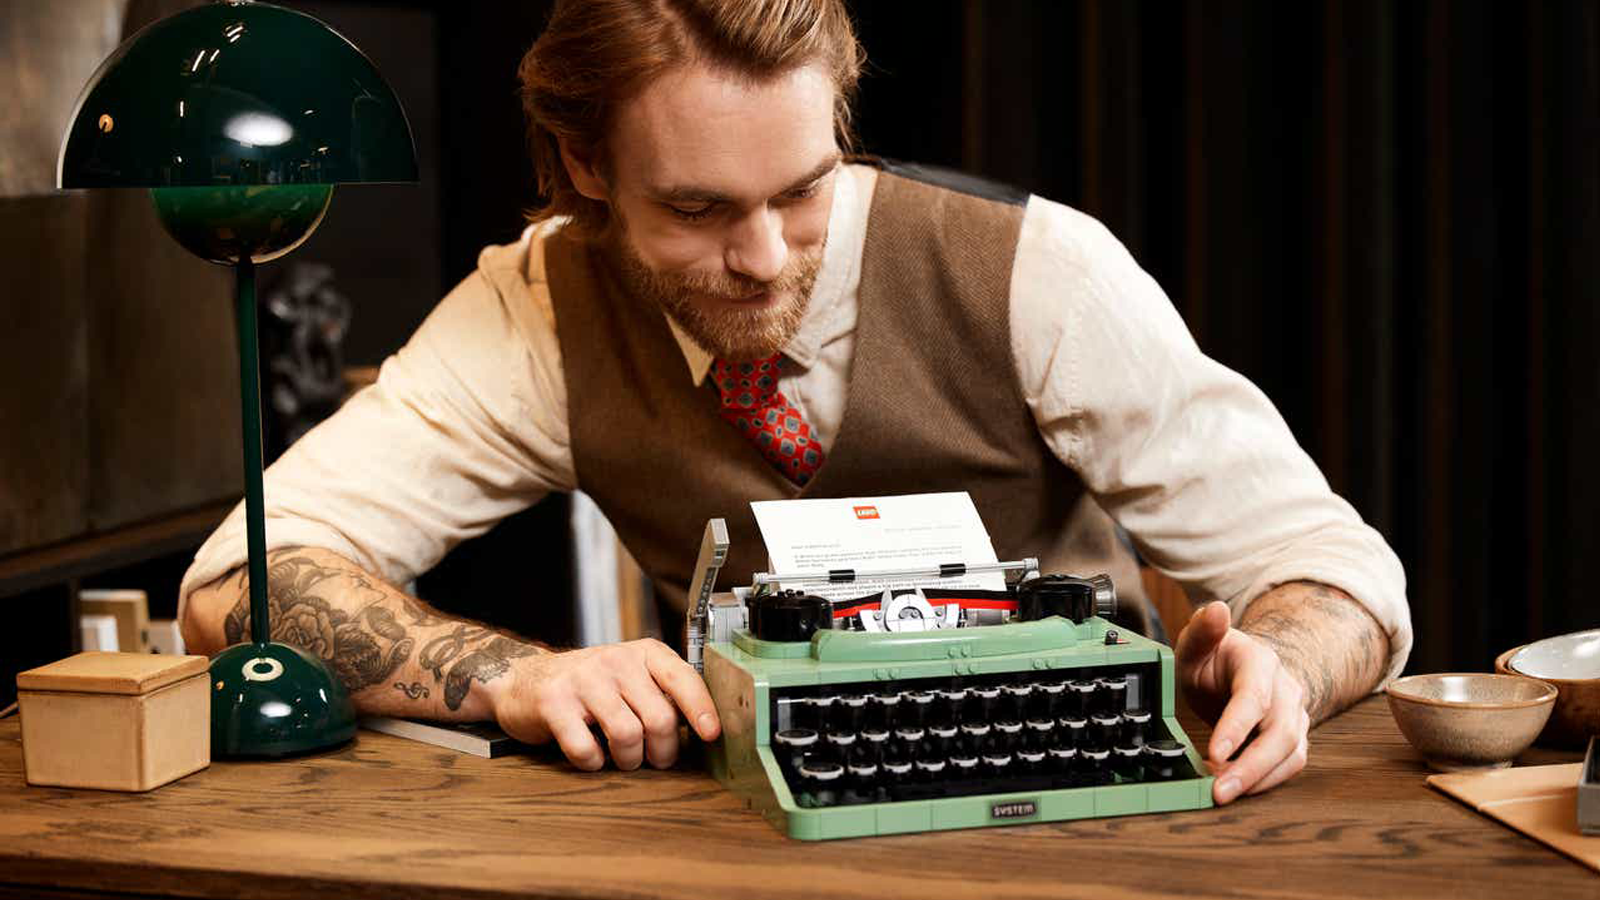 Person dressed in old-timey clothes sitting at wooden desk with LEGO Typewriter and other decorations